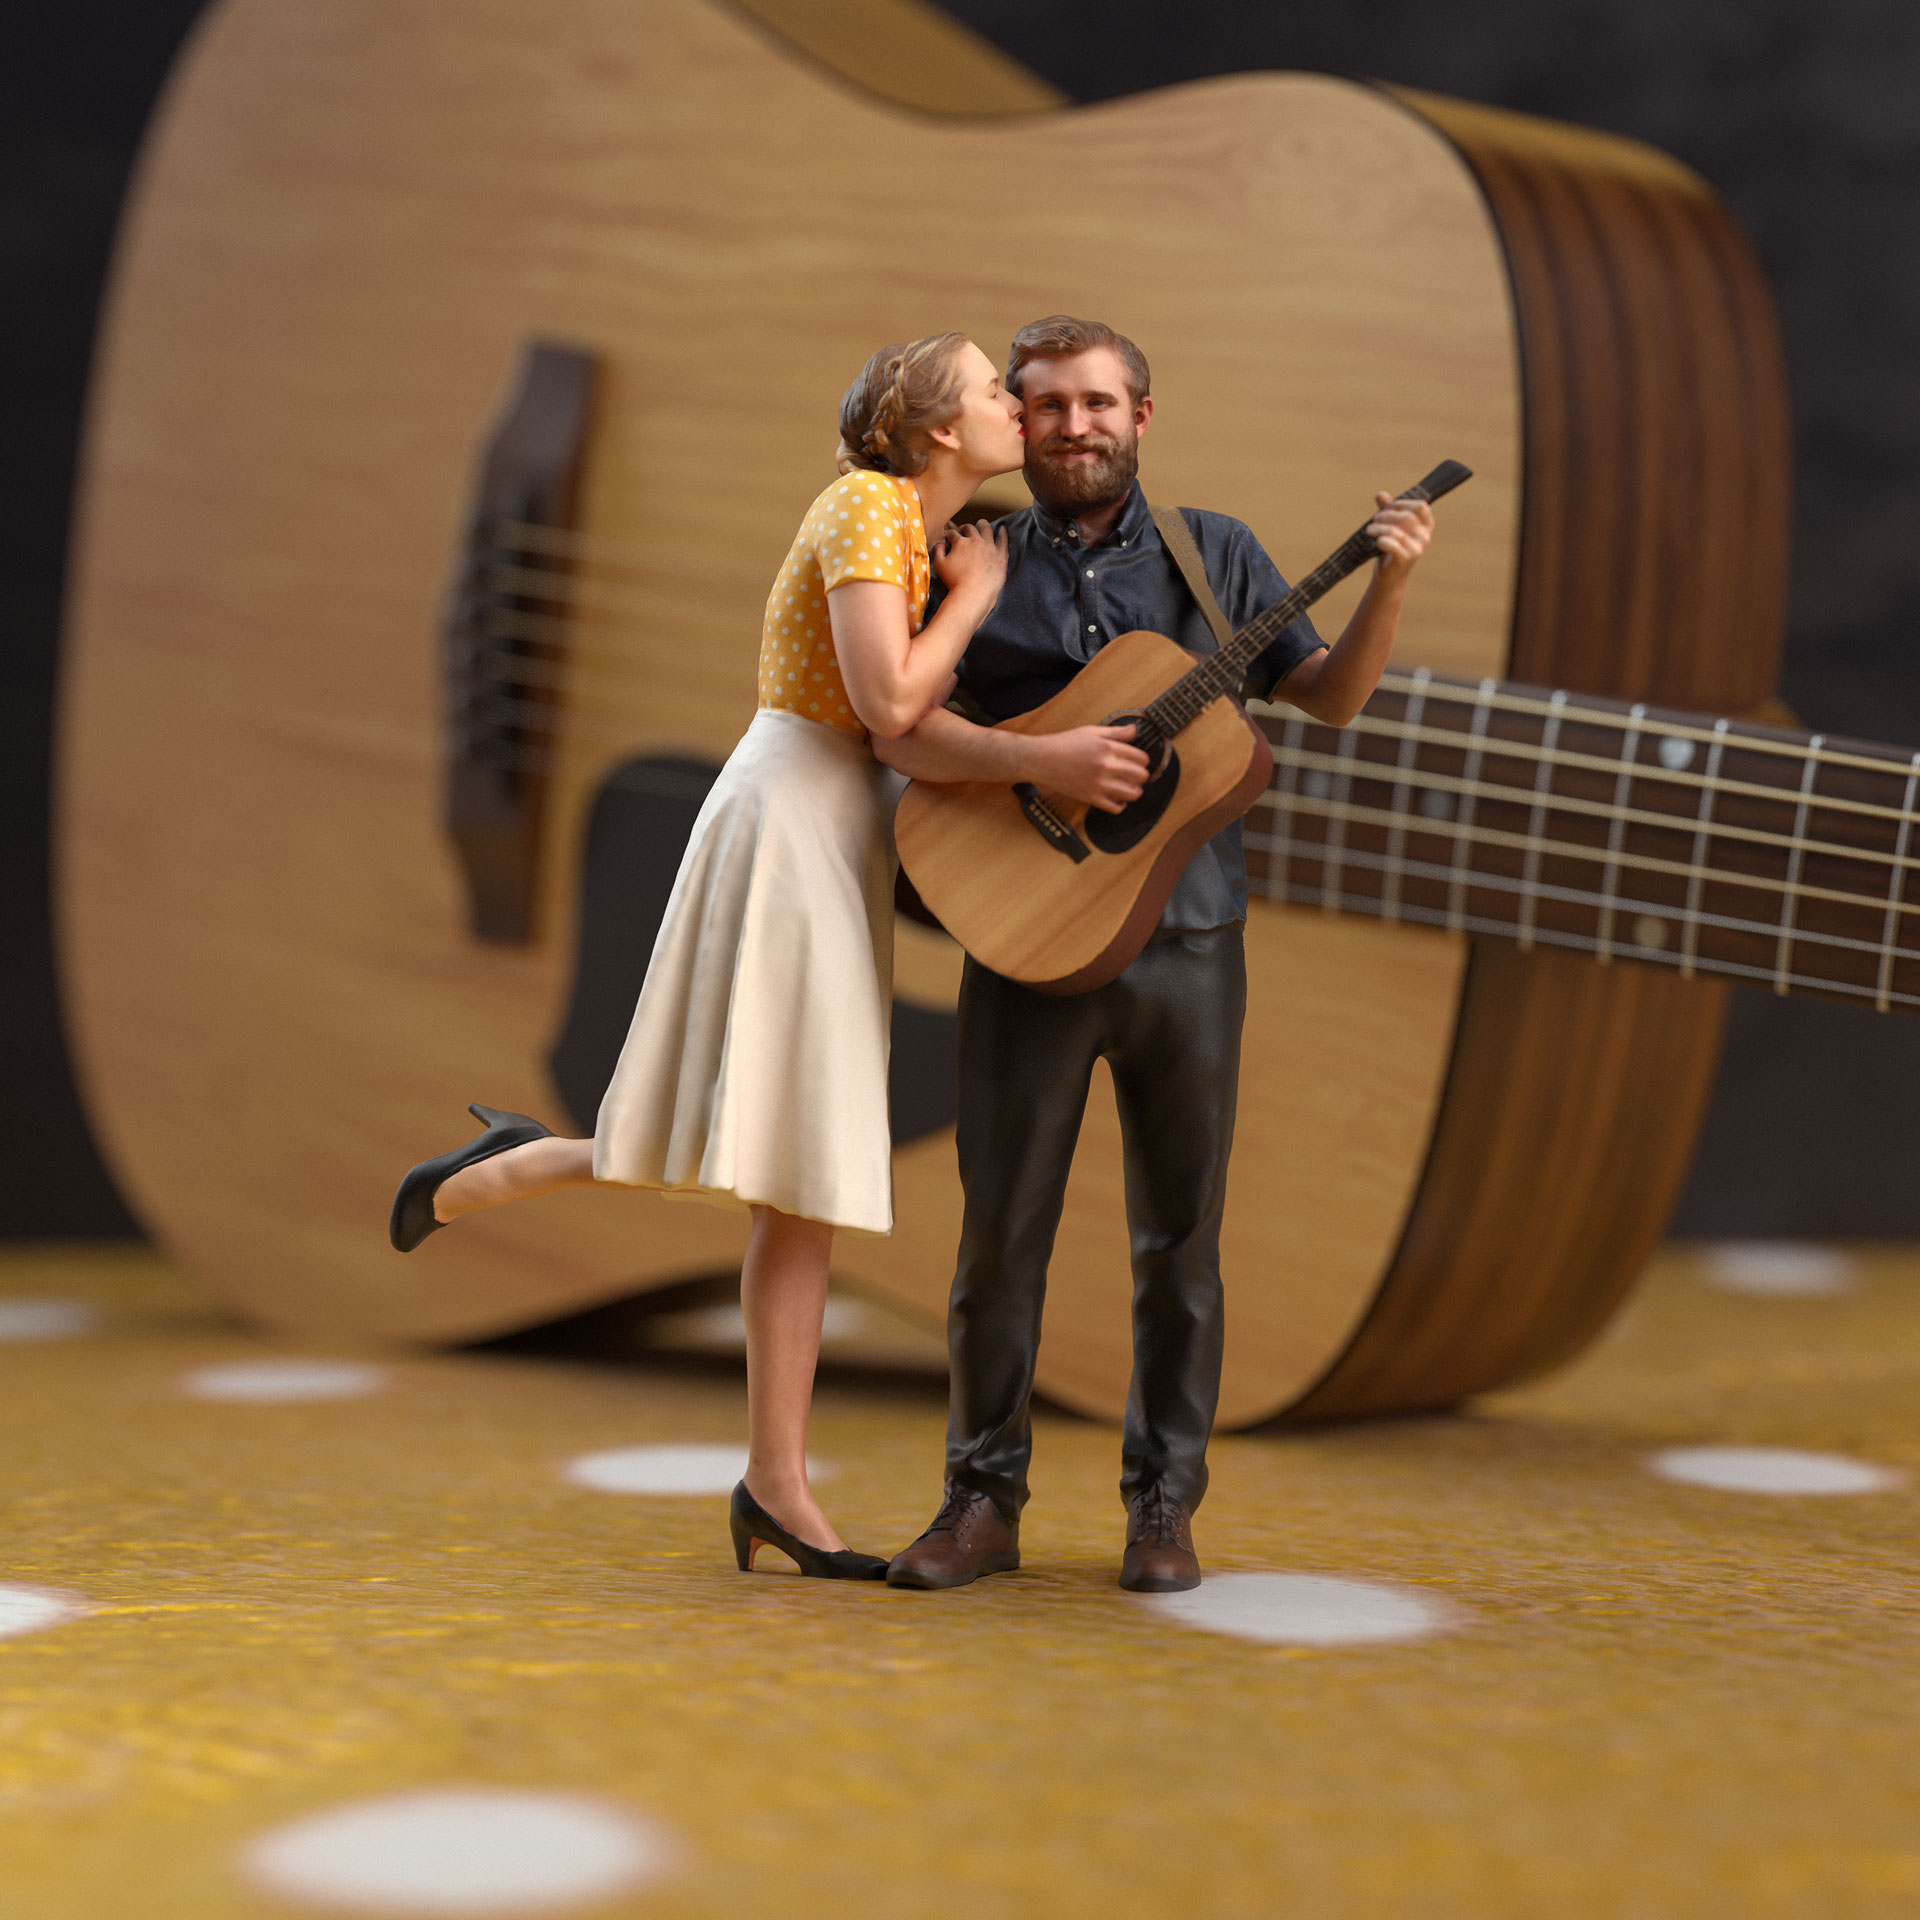 a woman kisses a man on the cheek while he holds a guitar